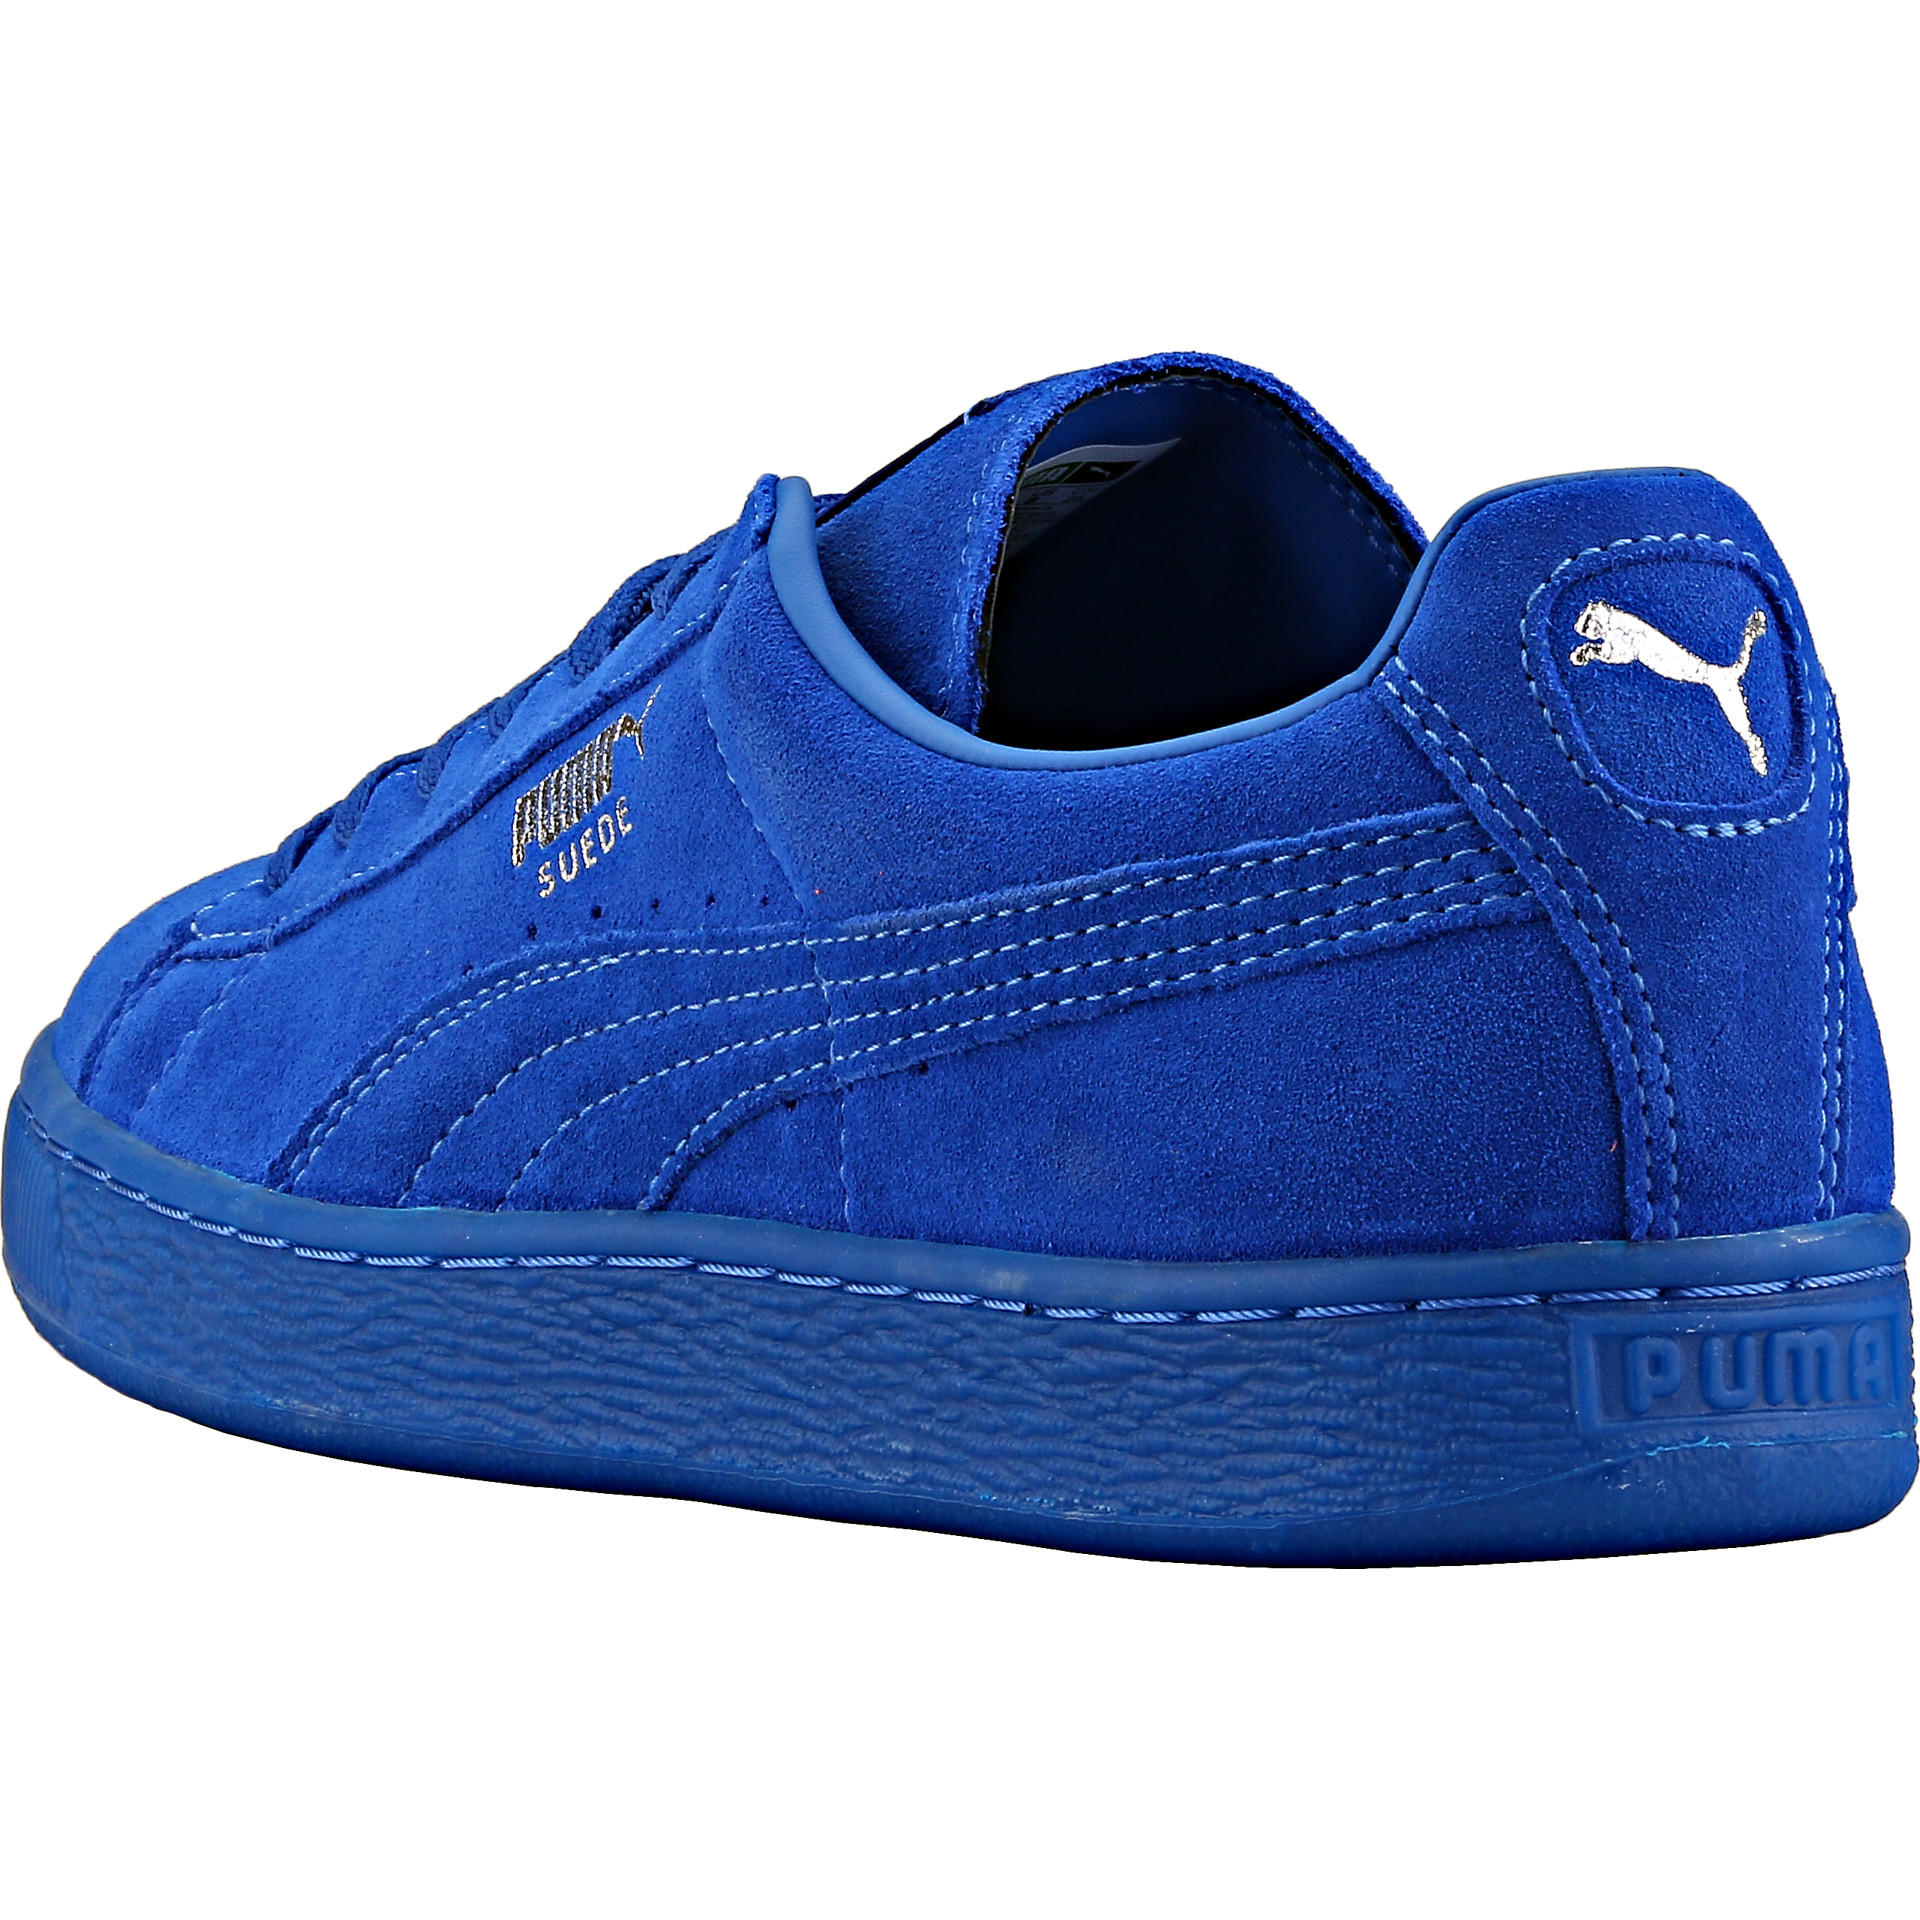 official photos 4c910 ff05a Puma Suede Classic + Iced - Royal Blue/Royal Blue